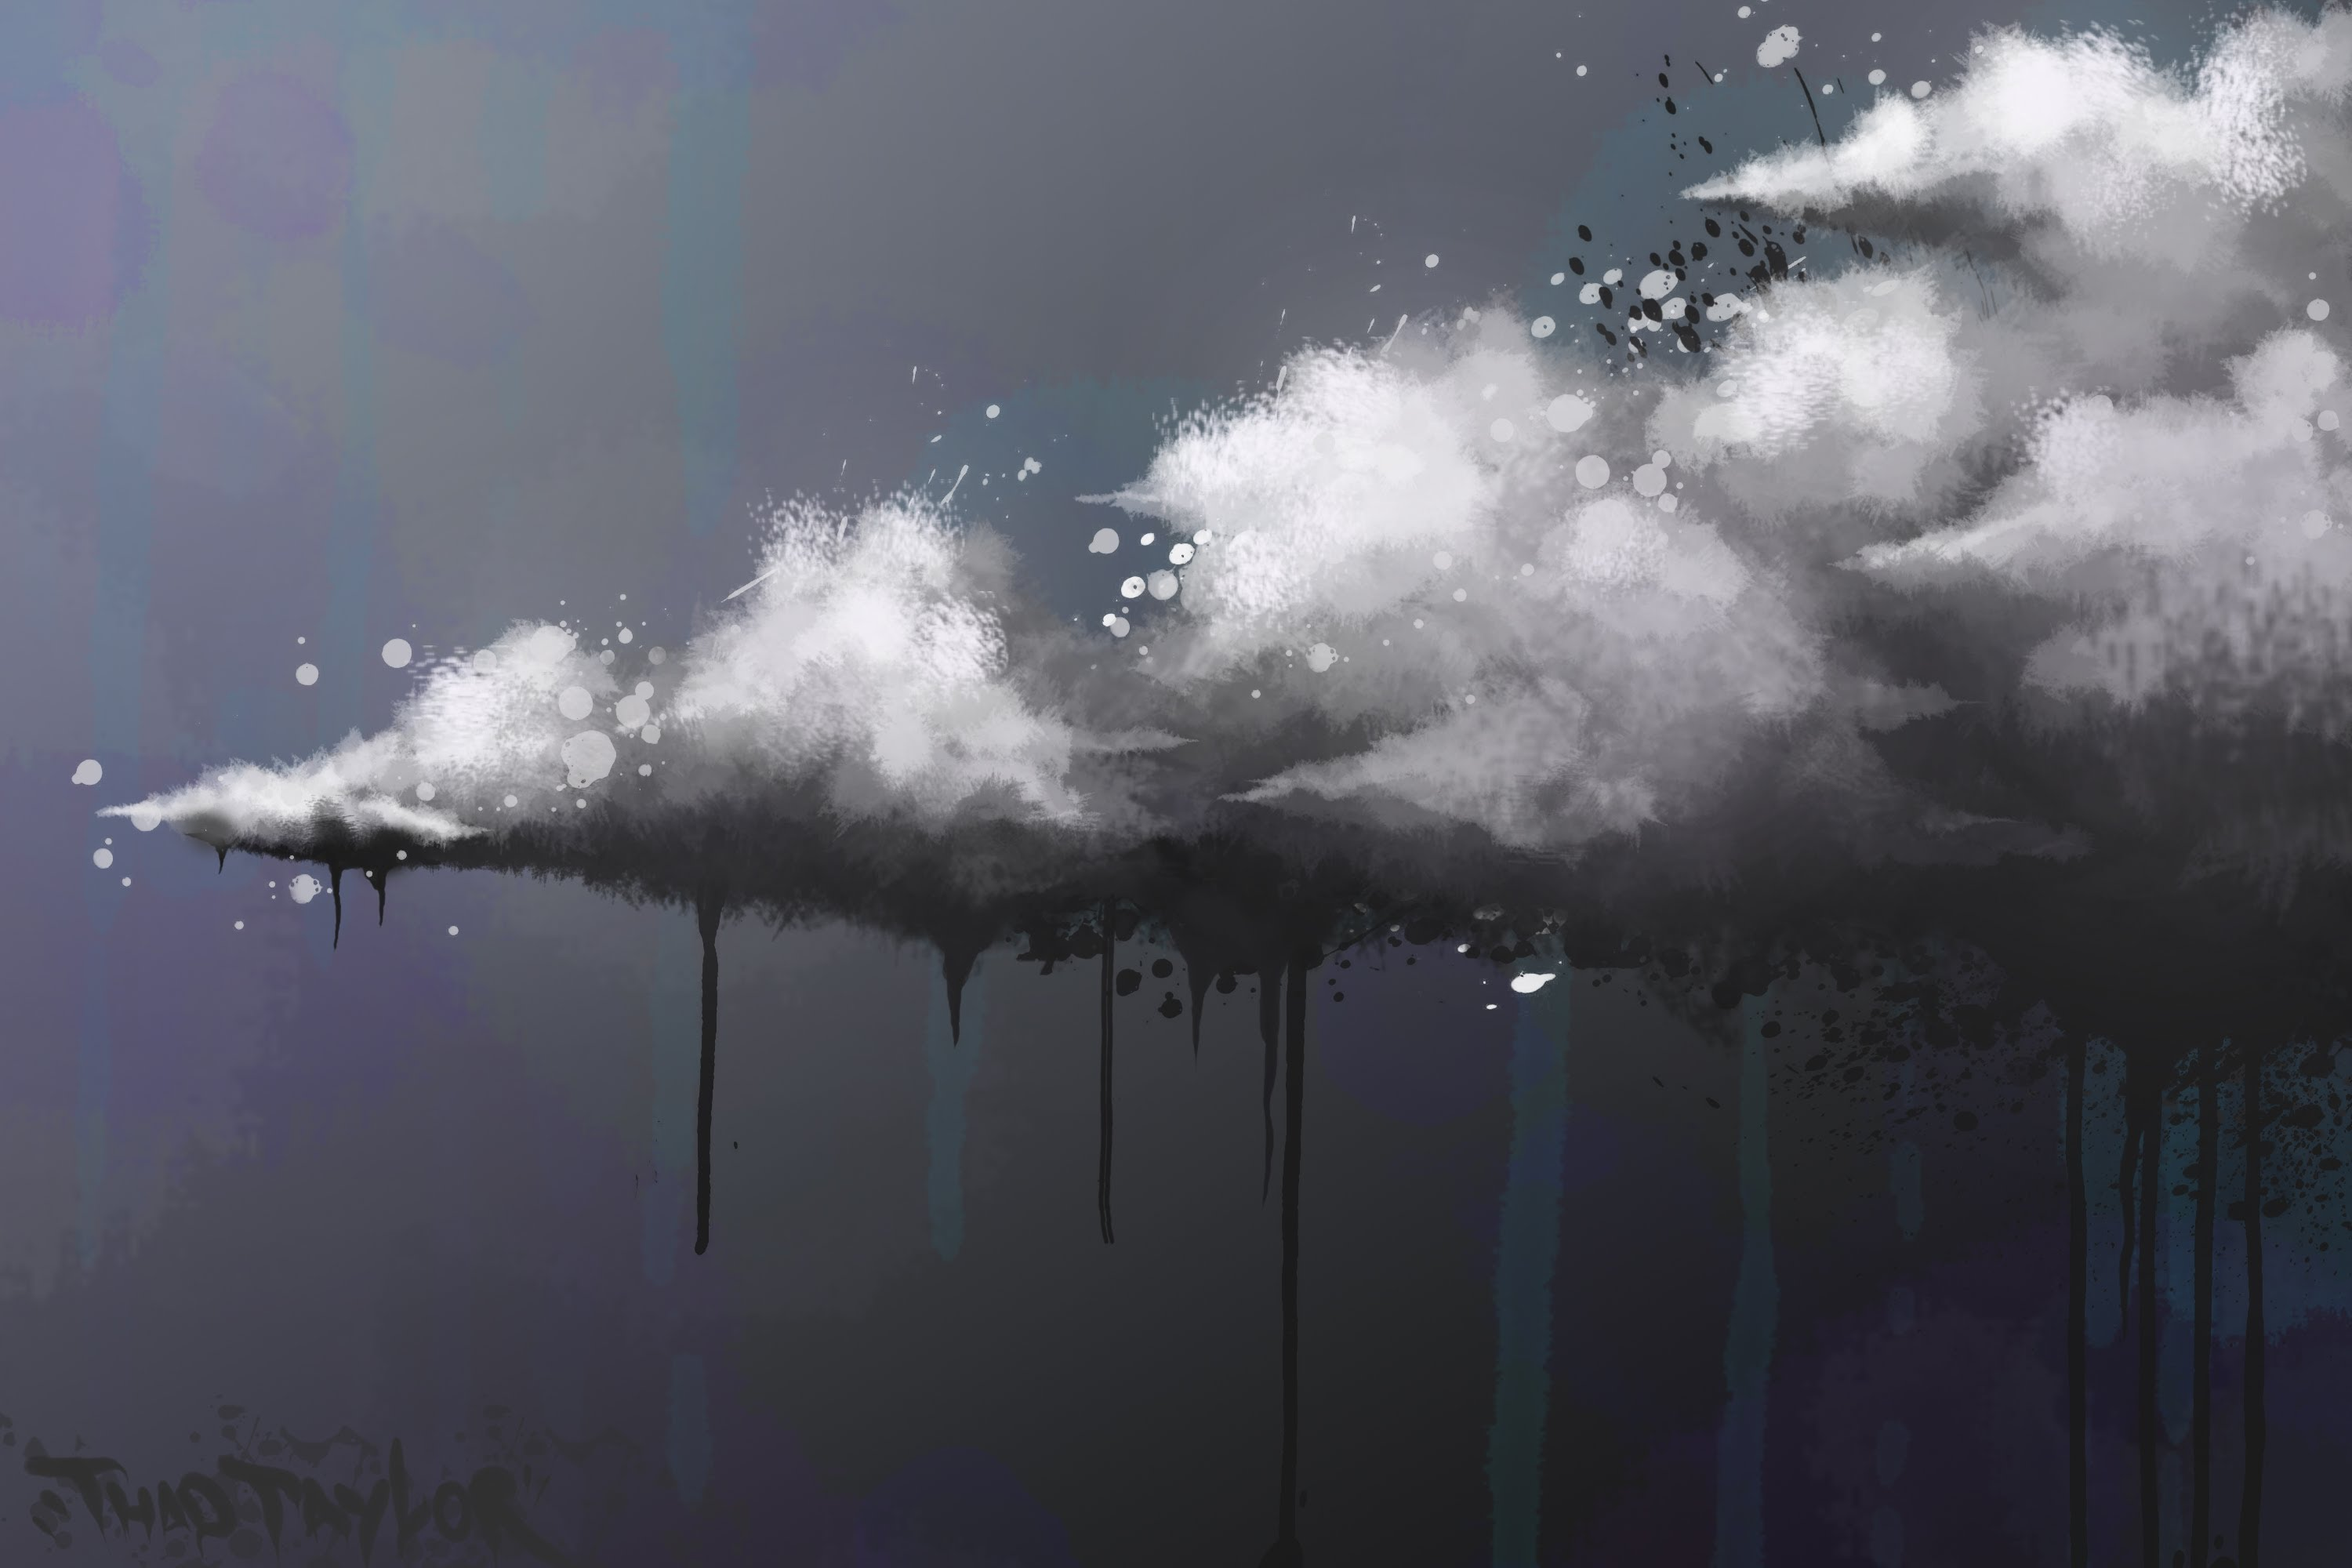 3000x2000 Surreal Cloud Photoshop Cs5 Painting By Thadtaylorart